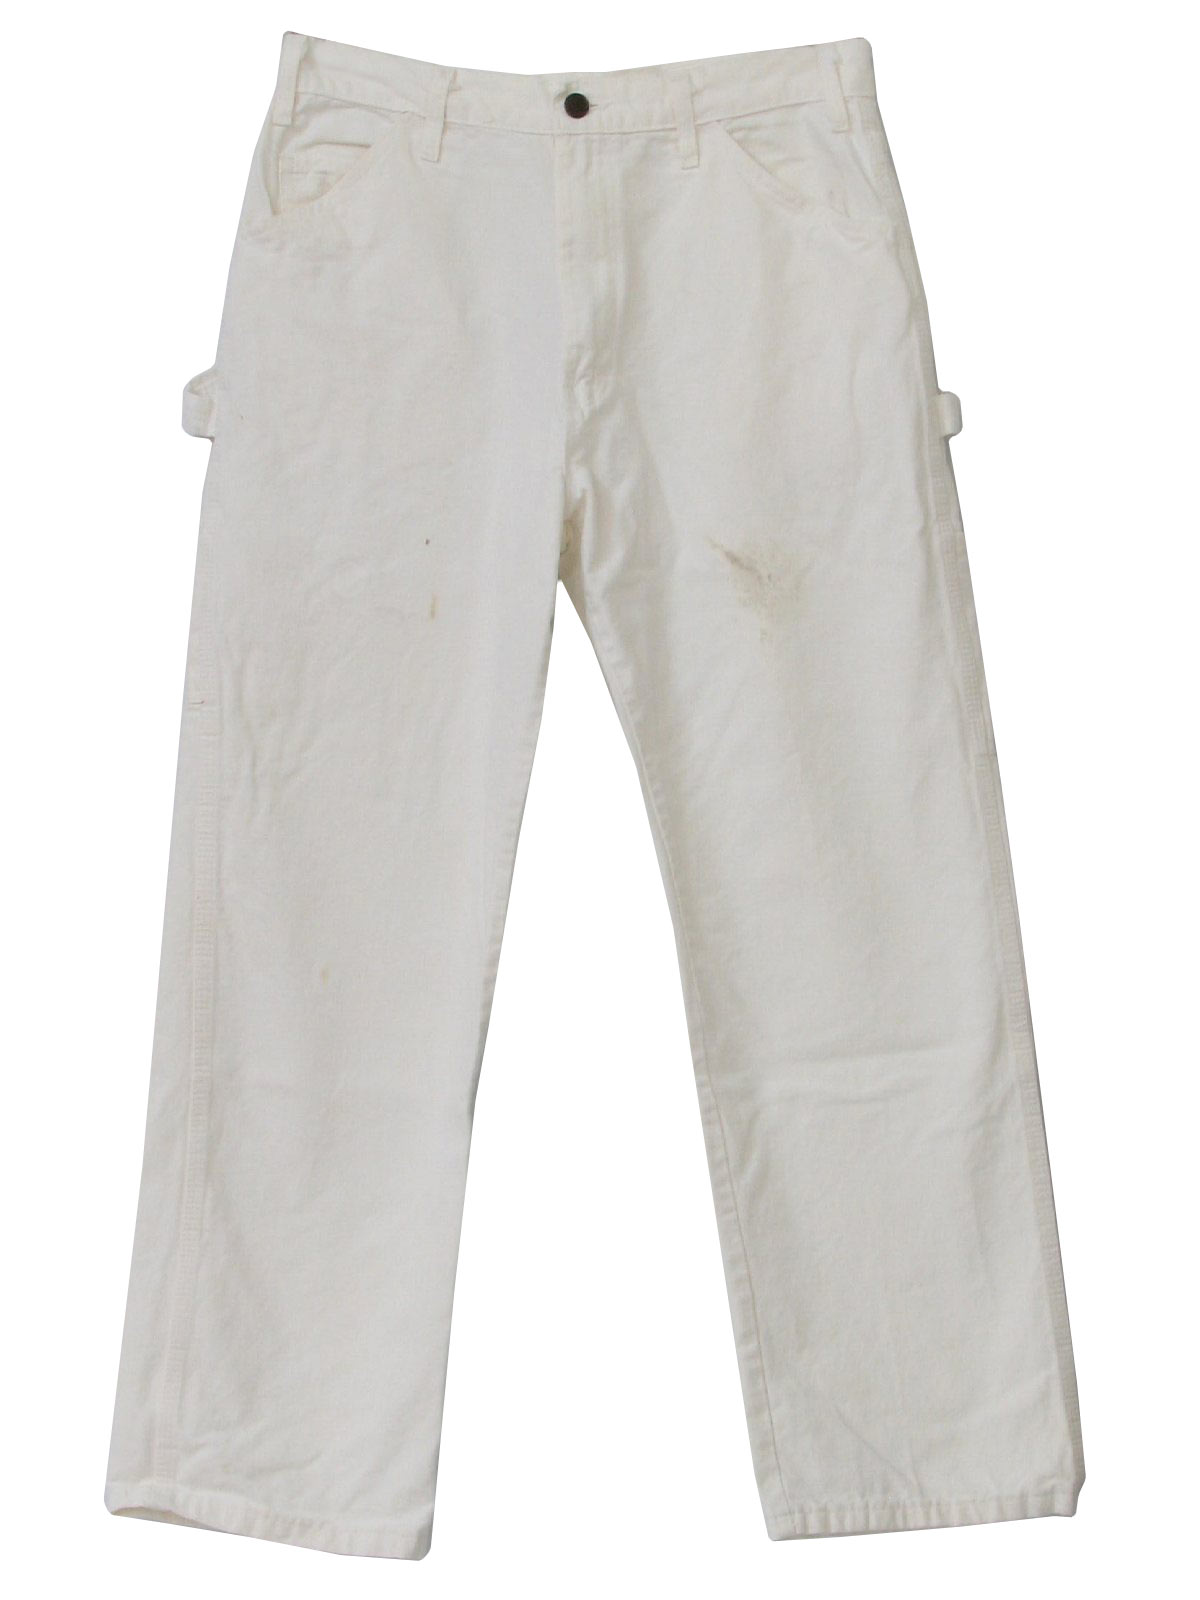 Painters Pants 80s Totally 80s Painter Pants